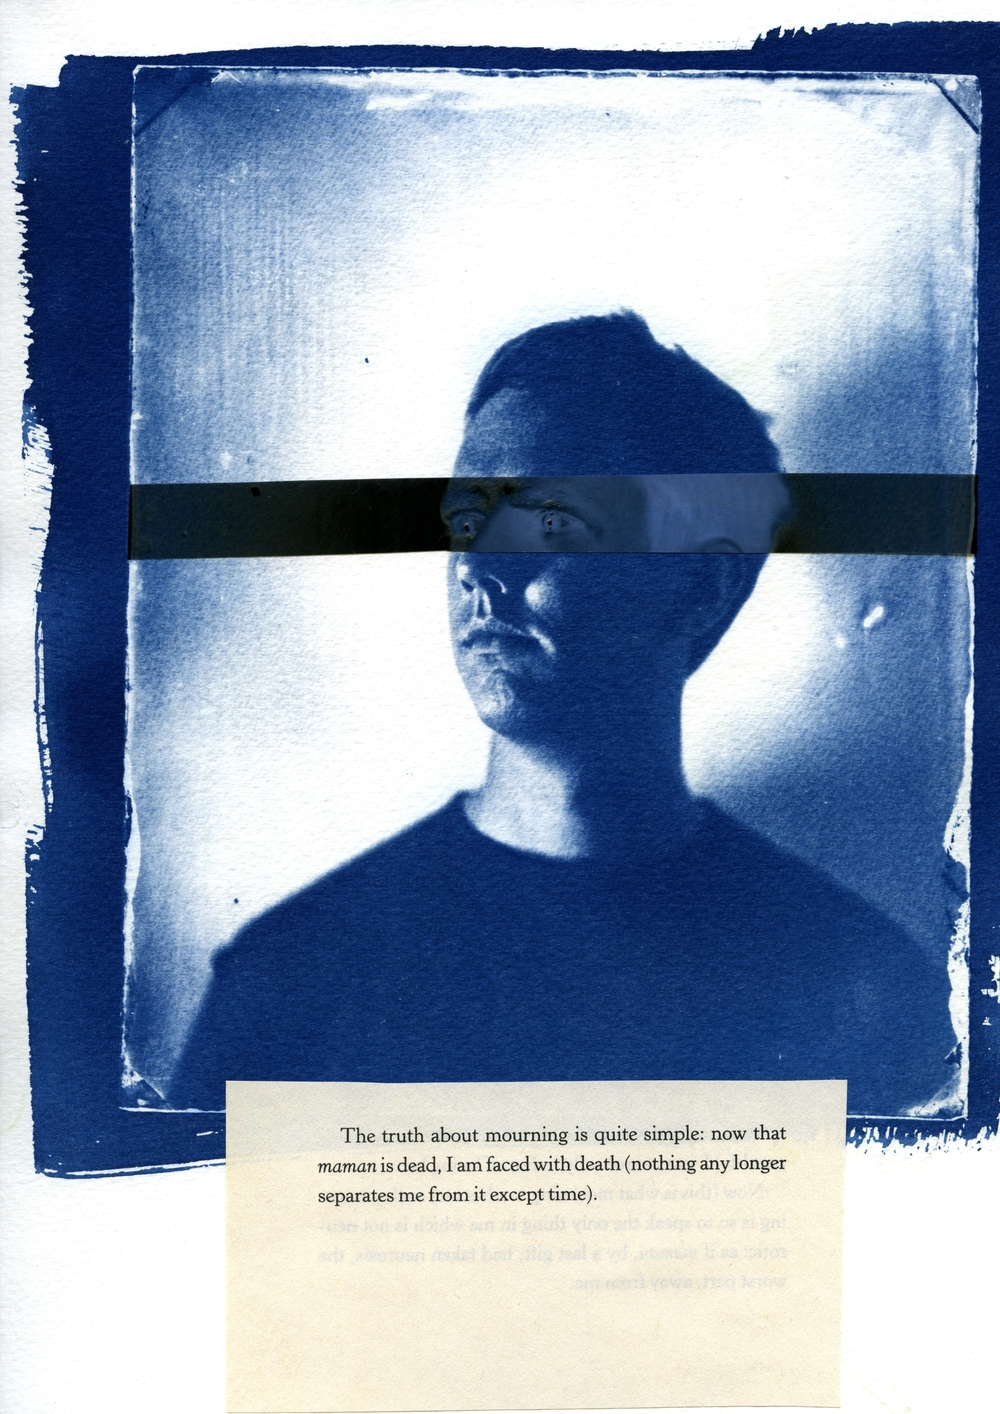 Photographs of us n.2, 2013 Cyanotype, digital negative, excerpt from Roland Barthes' Mourning Diaries, 9 x 12 inch